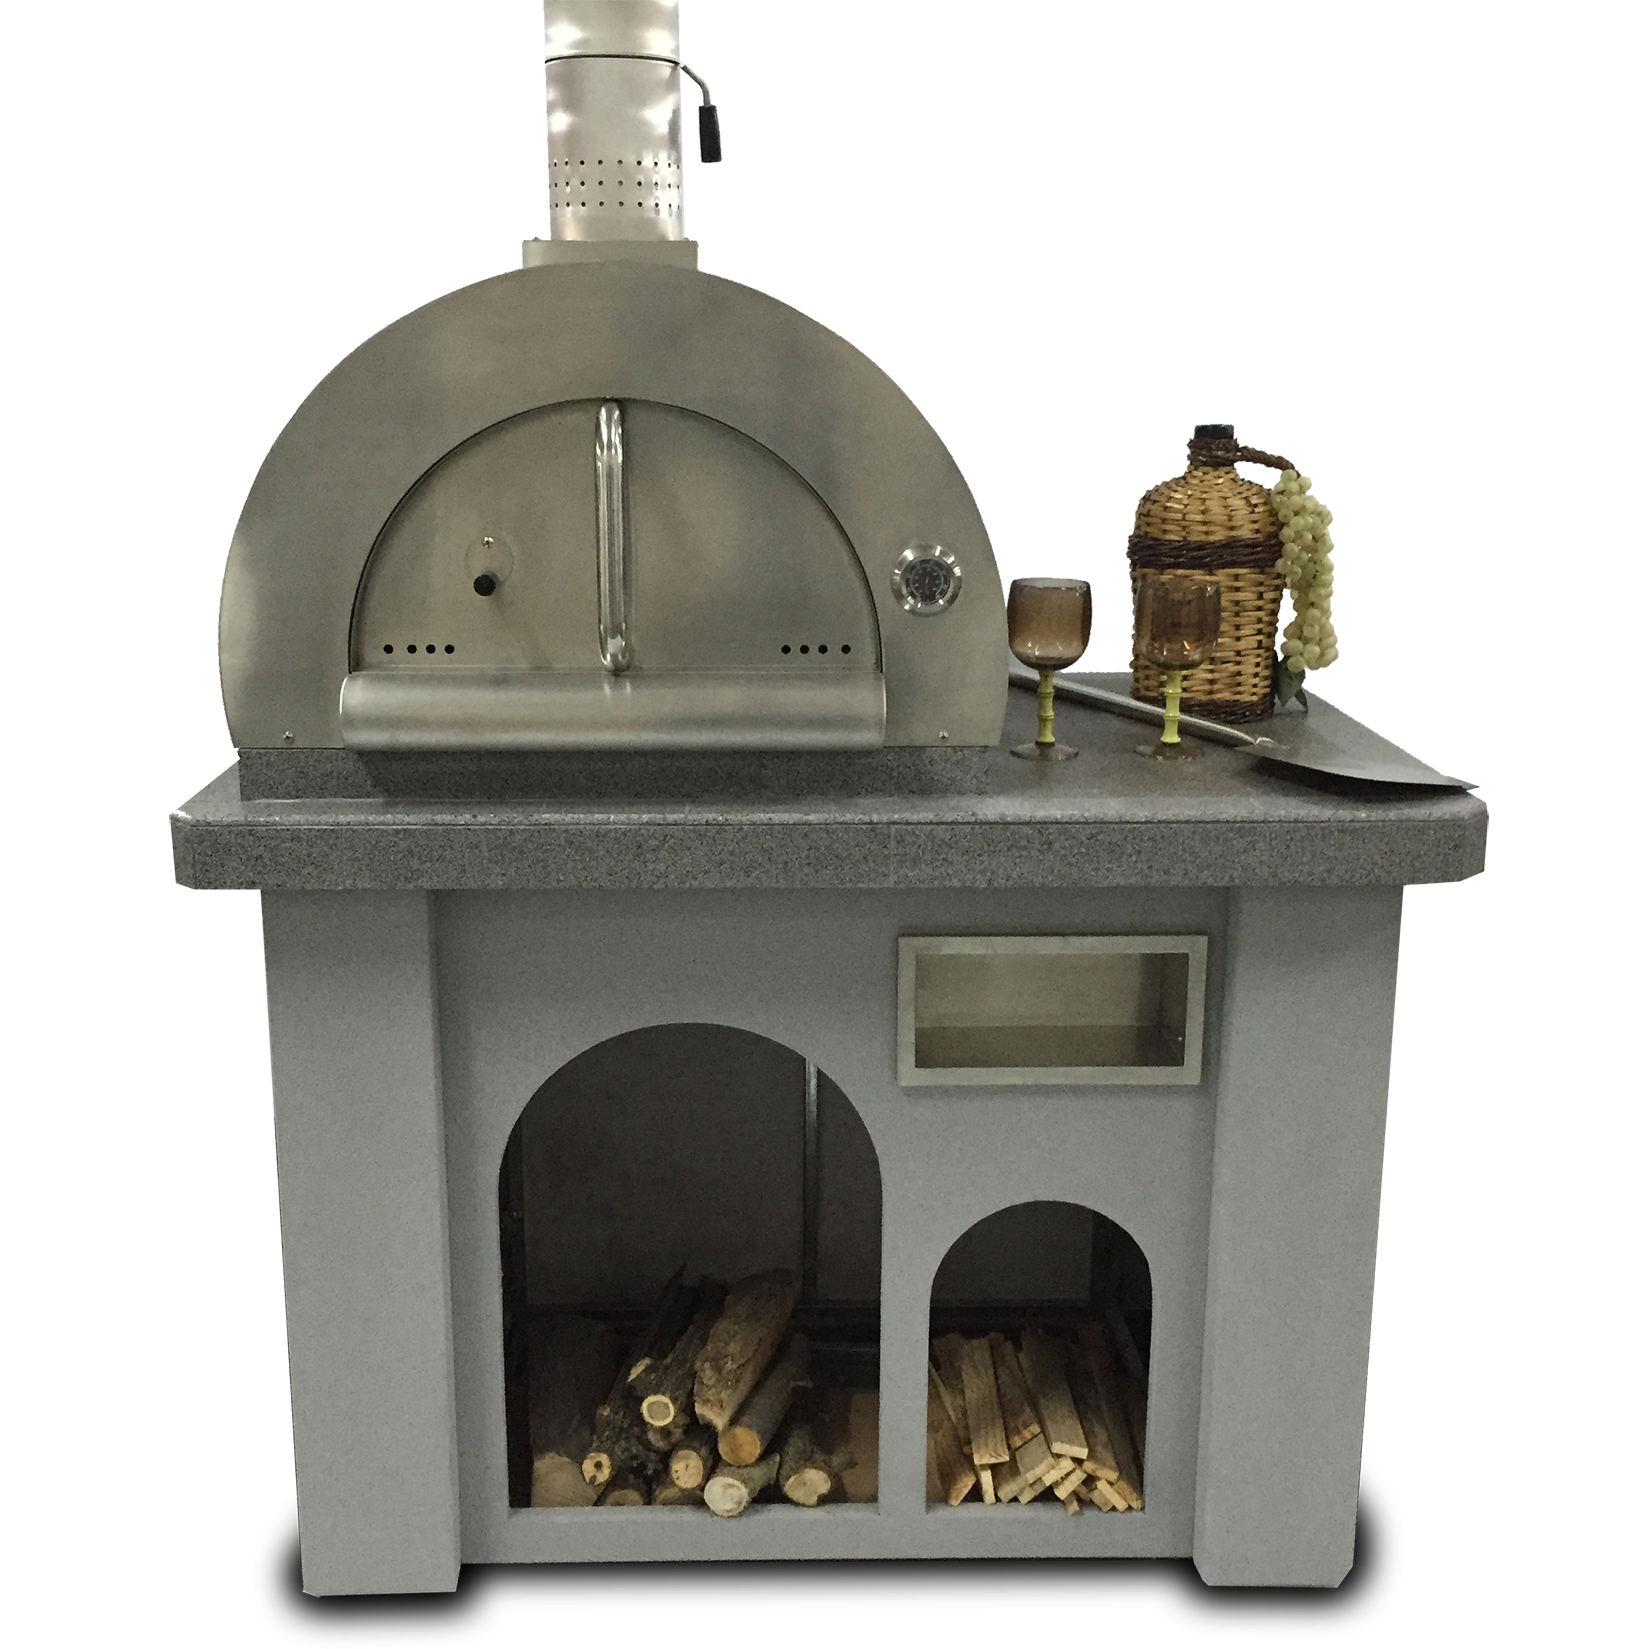 Biscayne Series Stucco/Tile Outdoor Pizza Oven    MSRP Pricing: $4200